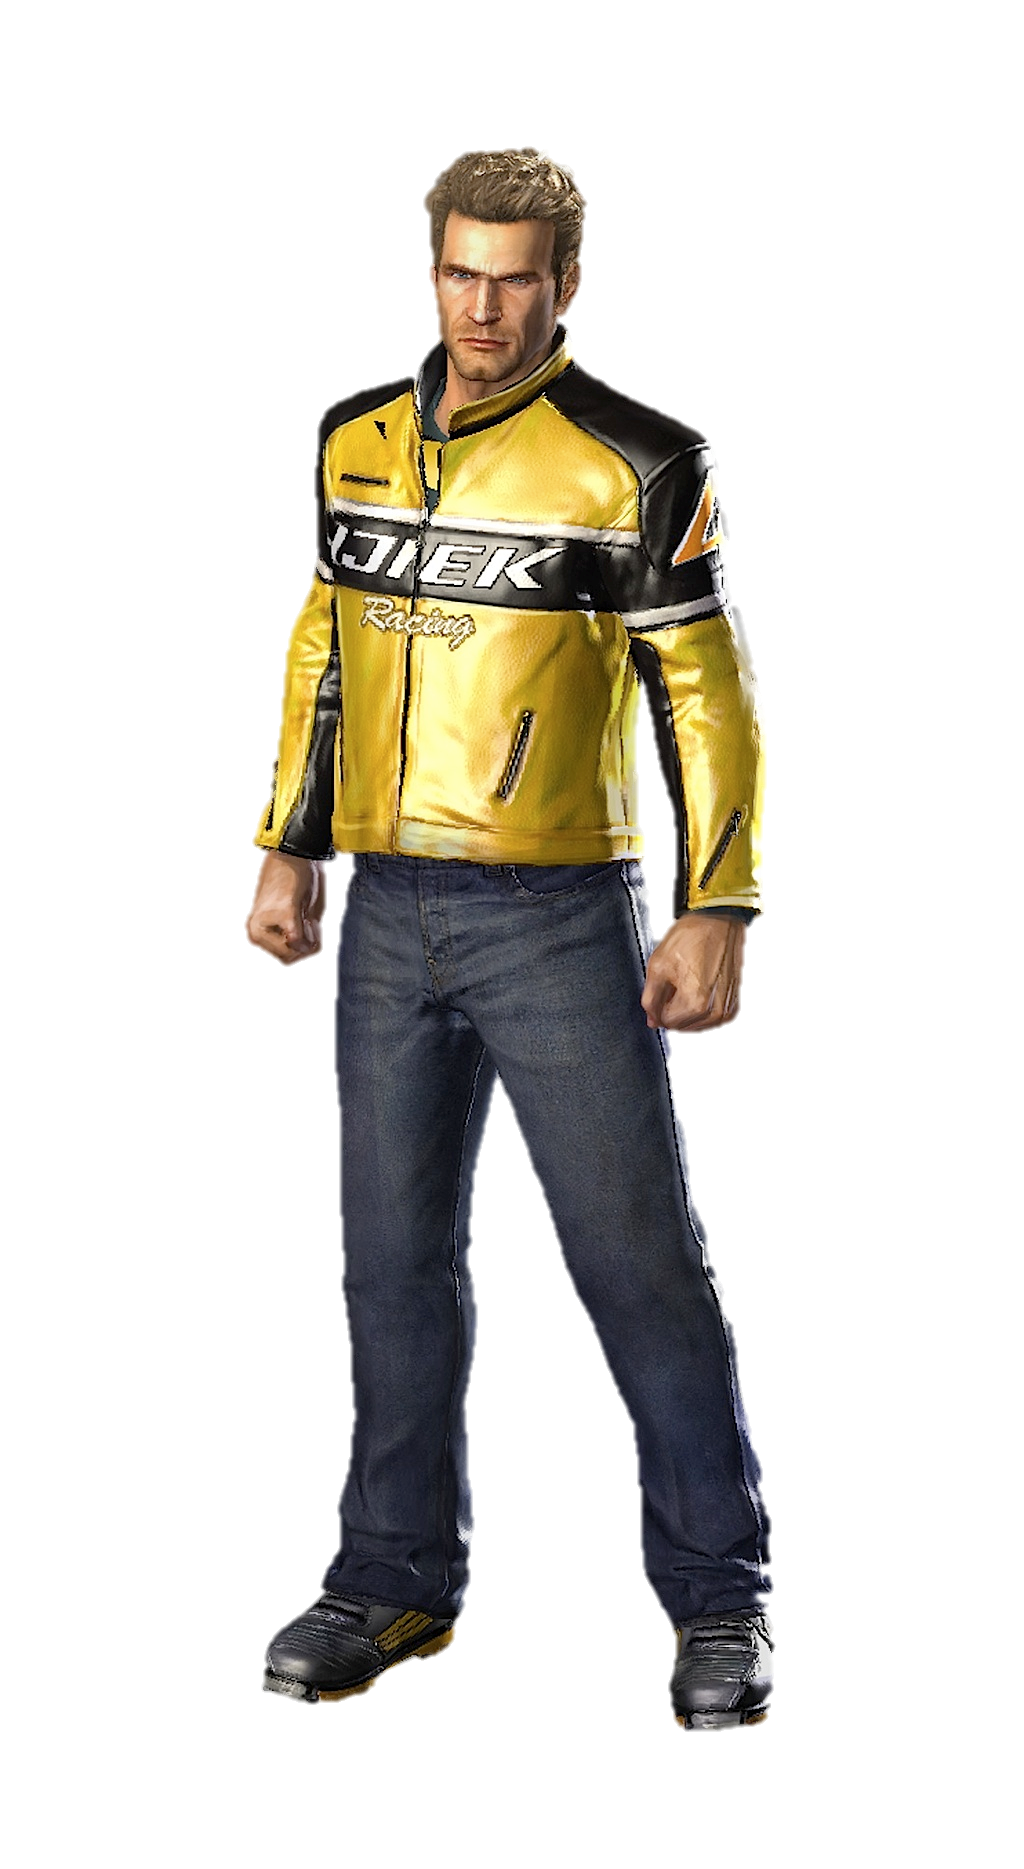 Dead rising 2 png. Image chuck greene playstation